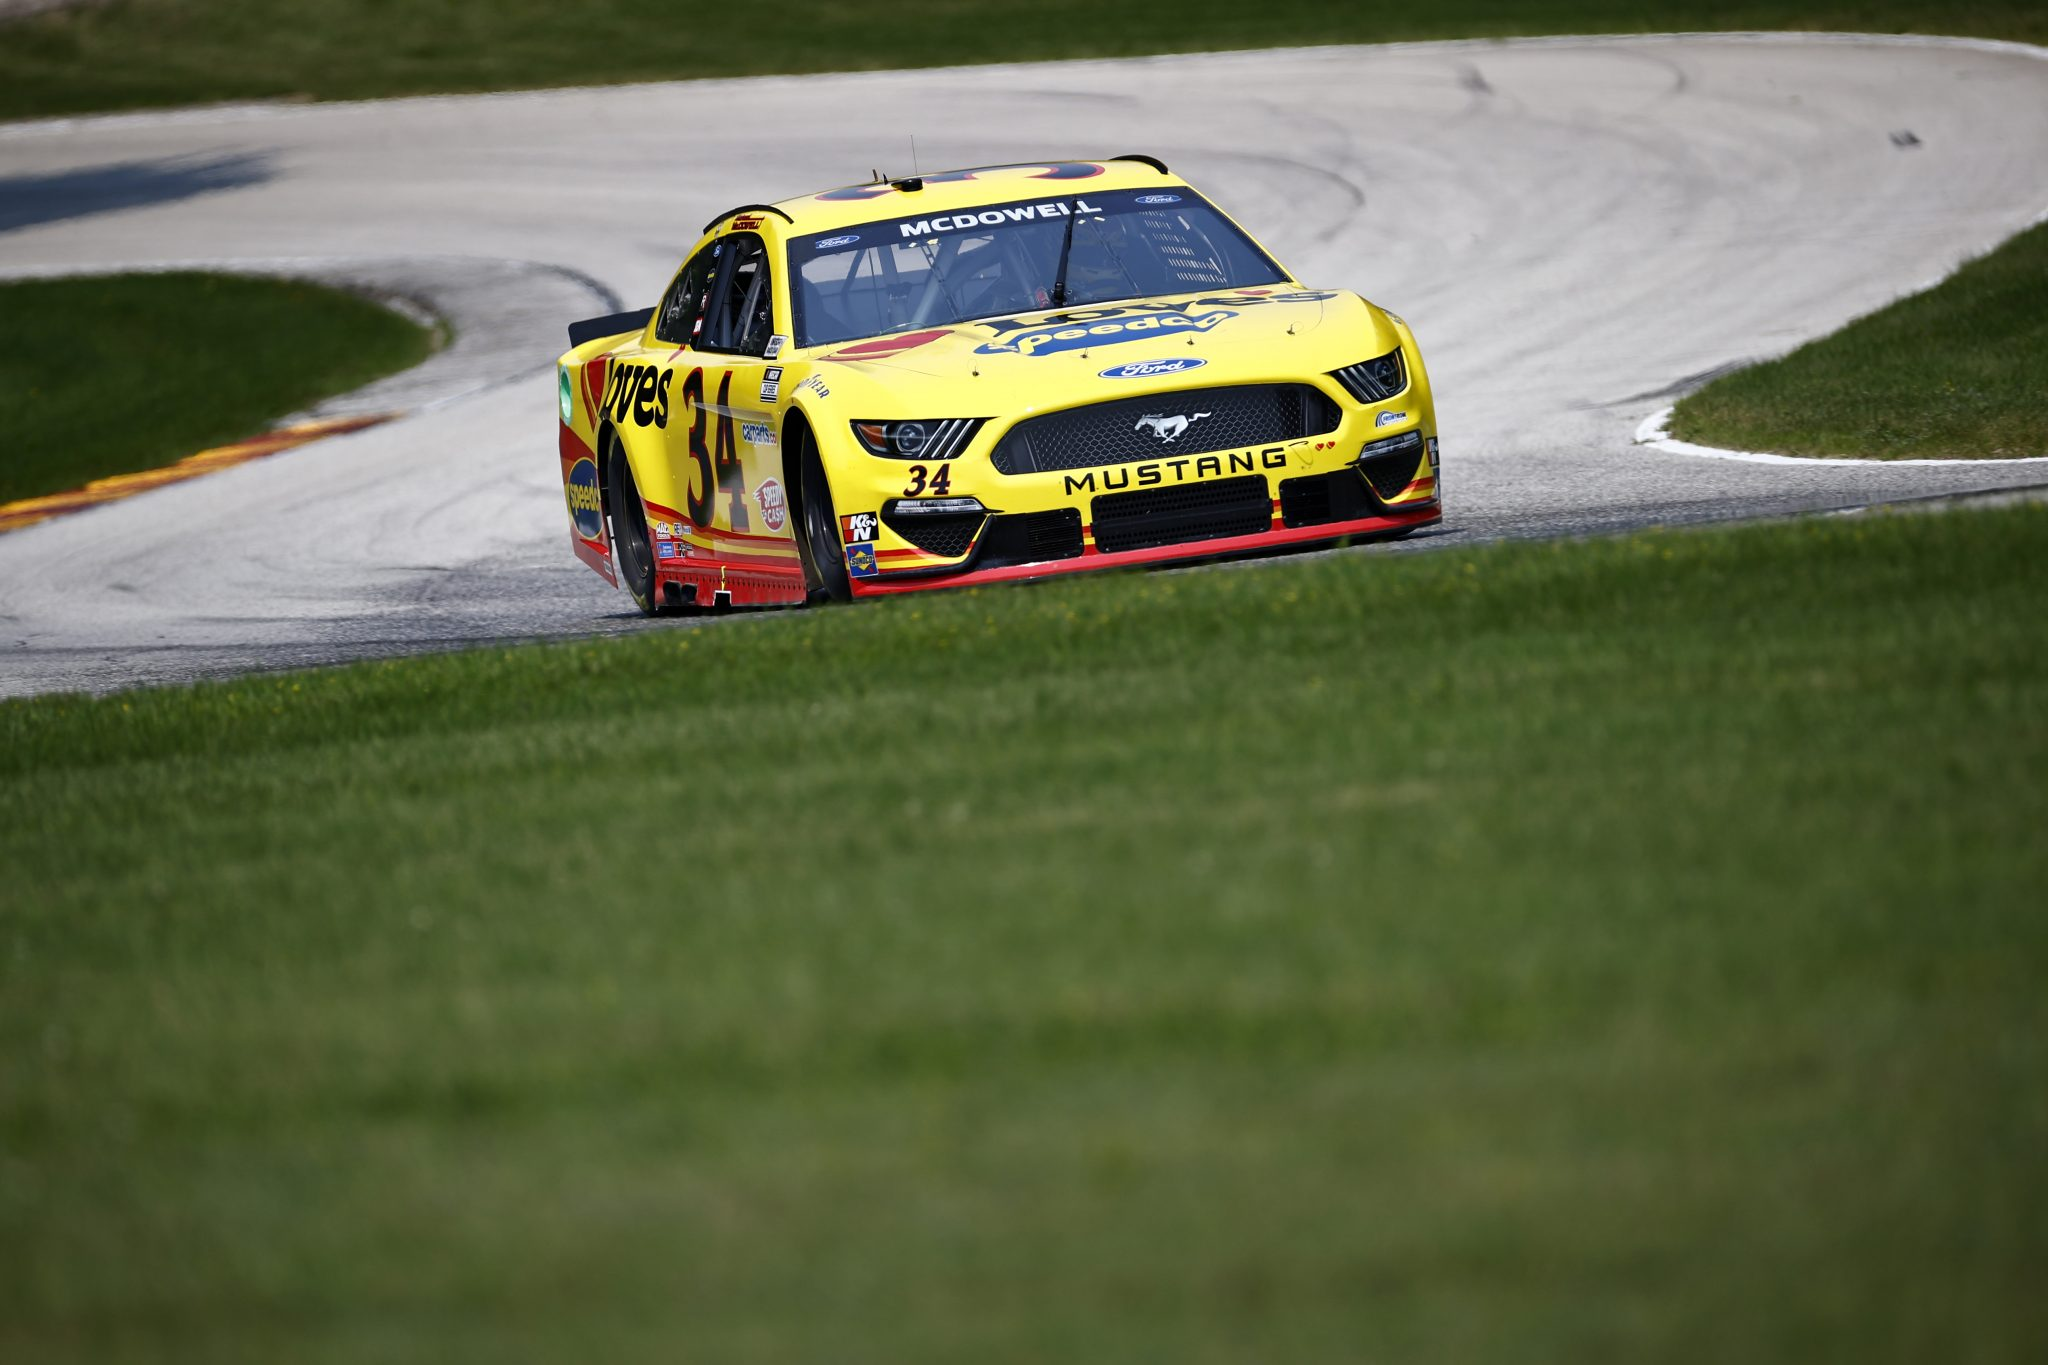 ELKHART LAKE, WISCONSIN - JULY 03: Michael McDowell, driver of the #34 Love's Travel Stops Ford, drives during practice for the NASCAR Cup Series Jockey Made in America 250 Presented by Kwik Trip at Road America on July 03, 2021 in Elkhart Lake, Wisconsin. (Photo by Jared C. Tilton/Getty Images) | Getty Images